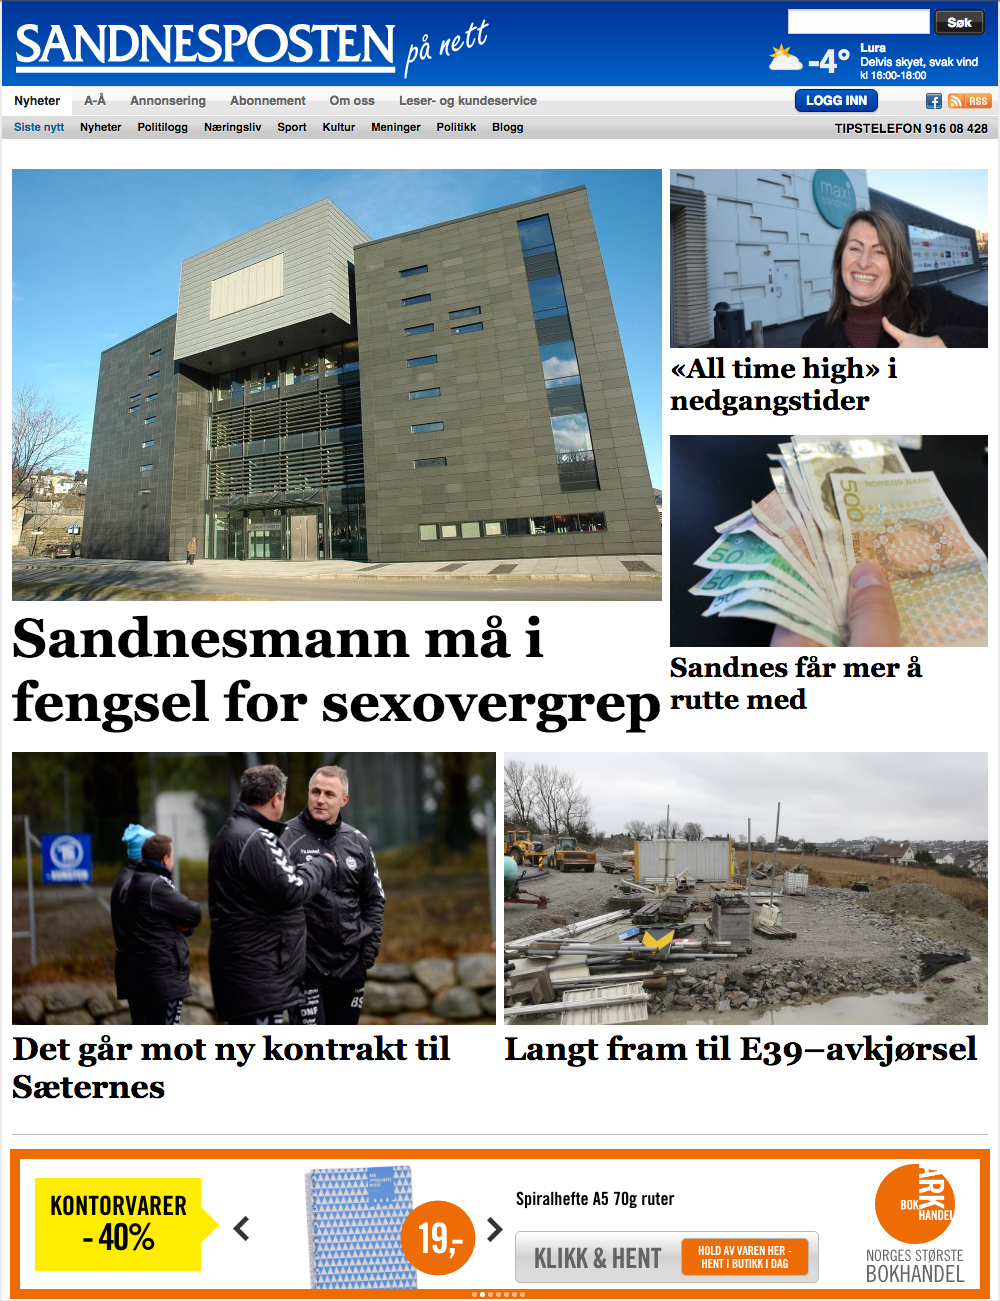 Sandnesposten